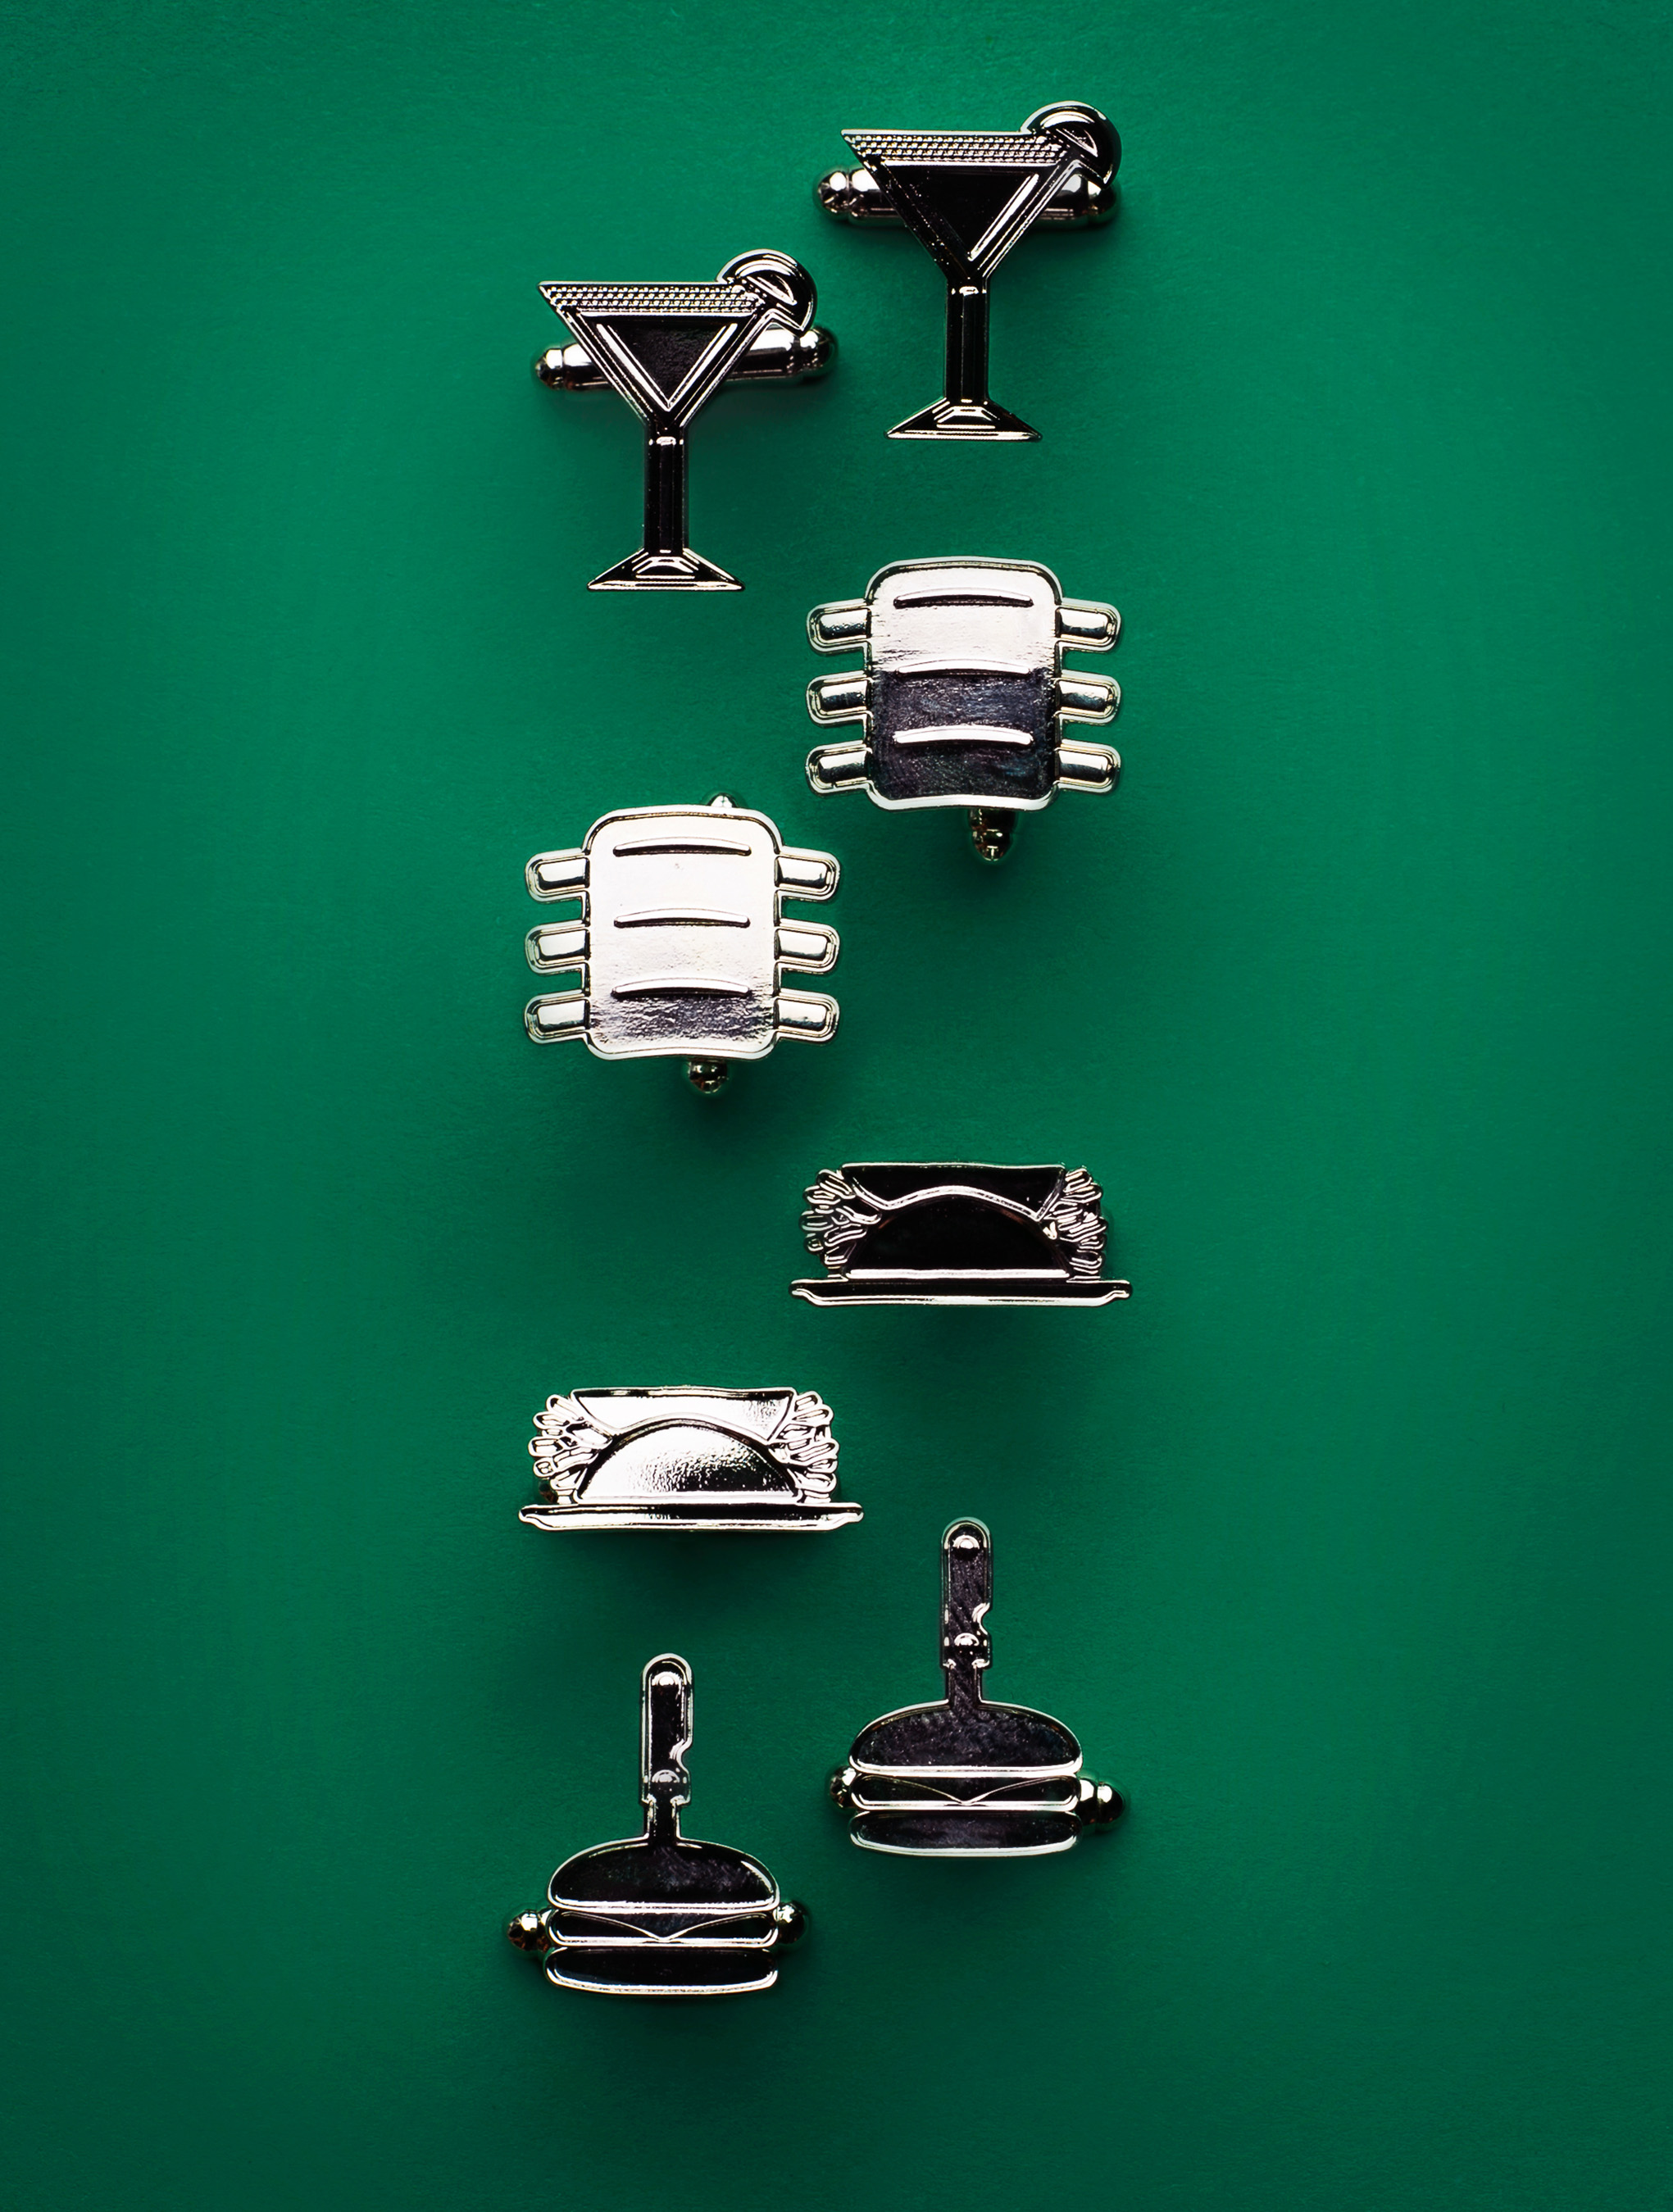 Add that extra je ne sais quoi to your debonair style with these burger, rib, fajita or margarita cufflink sets that will make any suit or tux more deluxe.